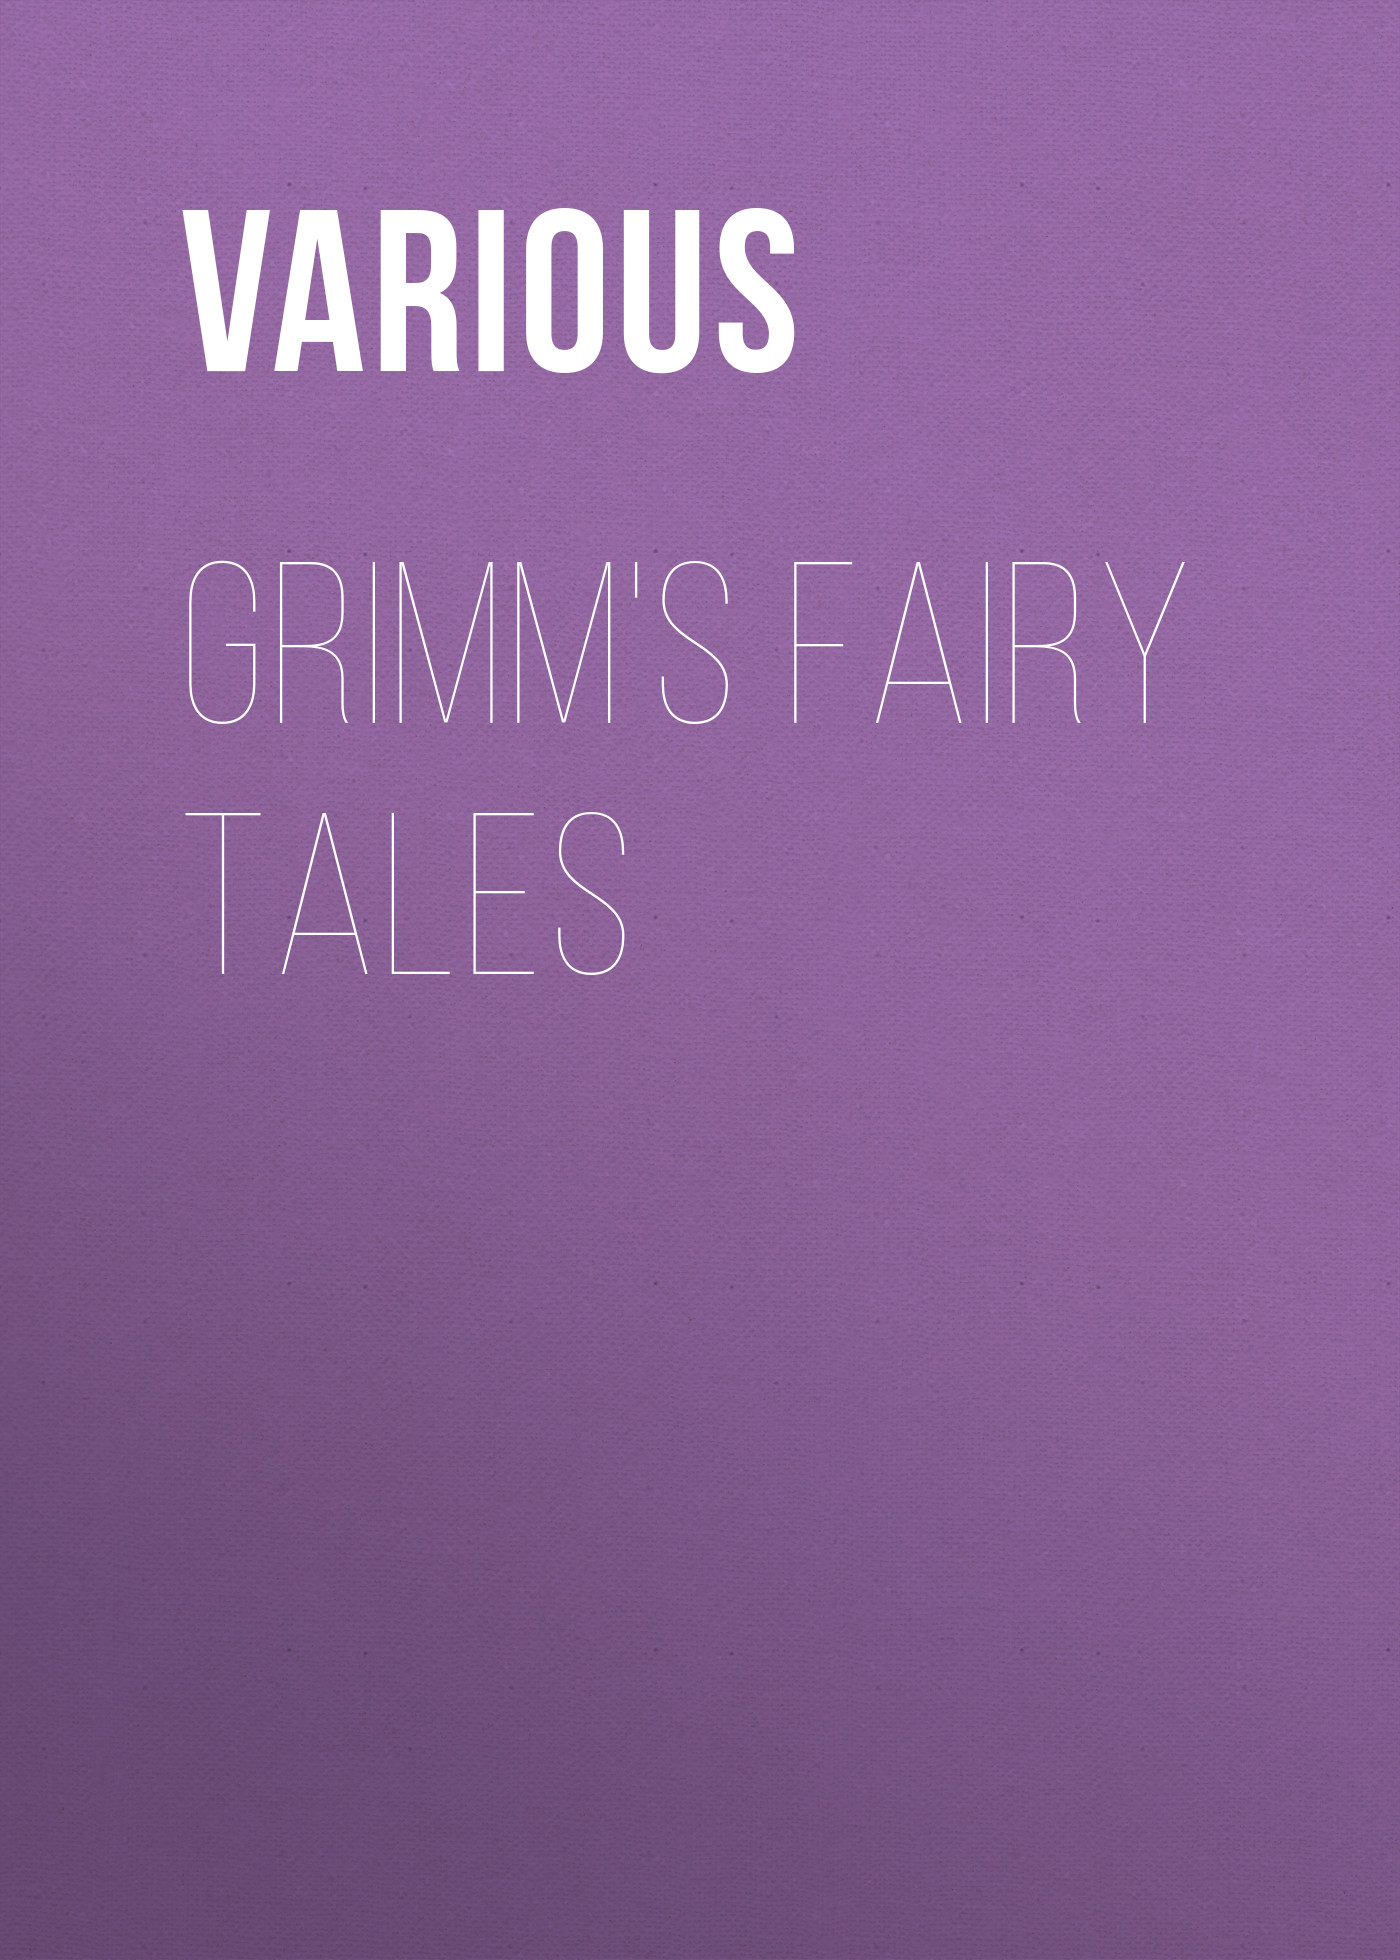 Various Grimm's Fairy Tales various grimm s fairy tales